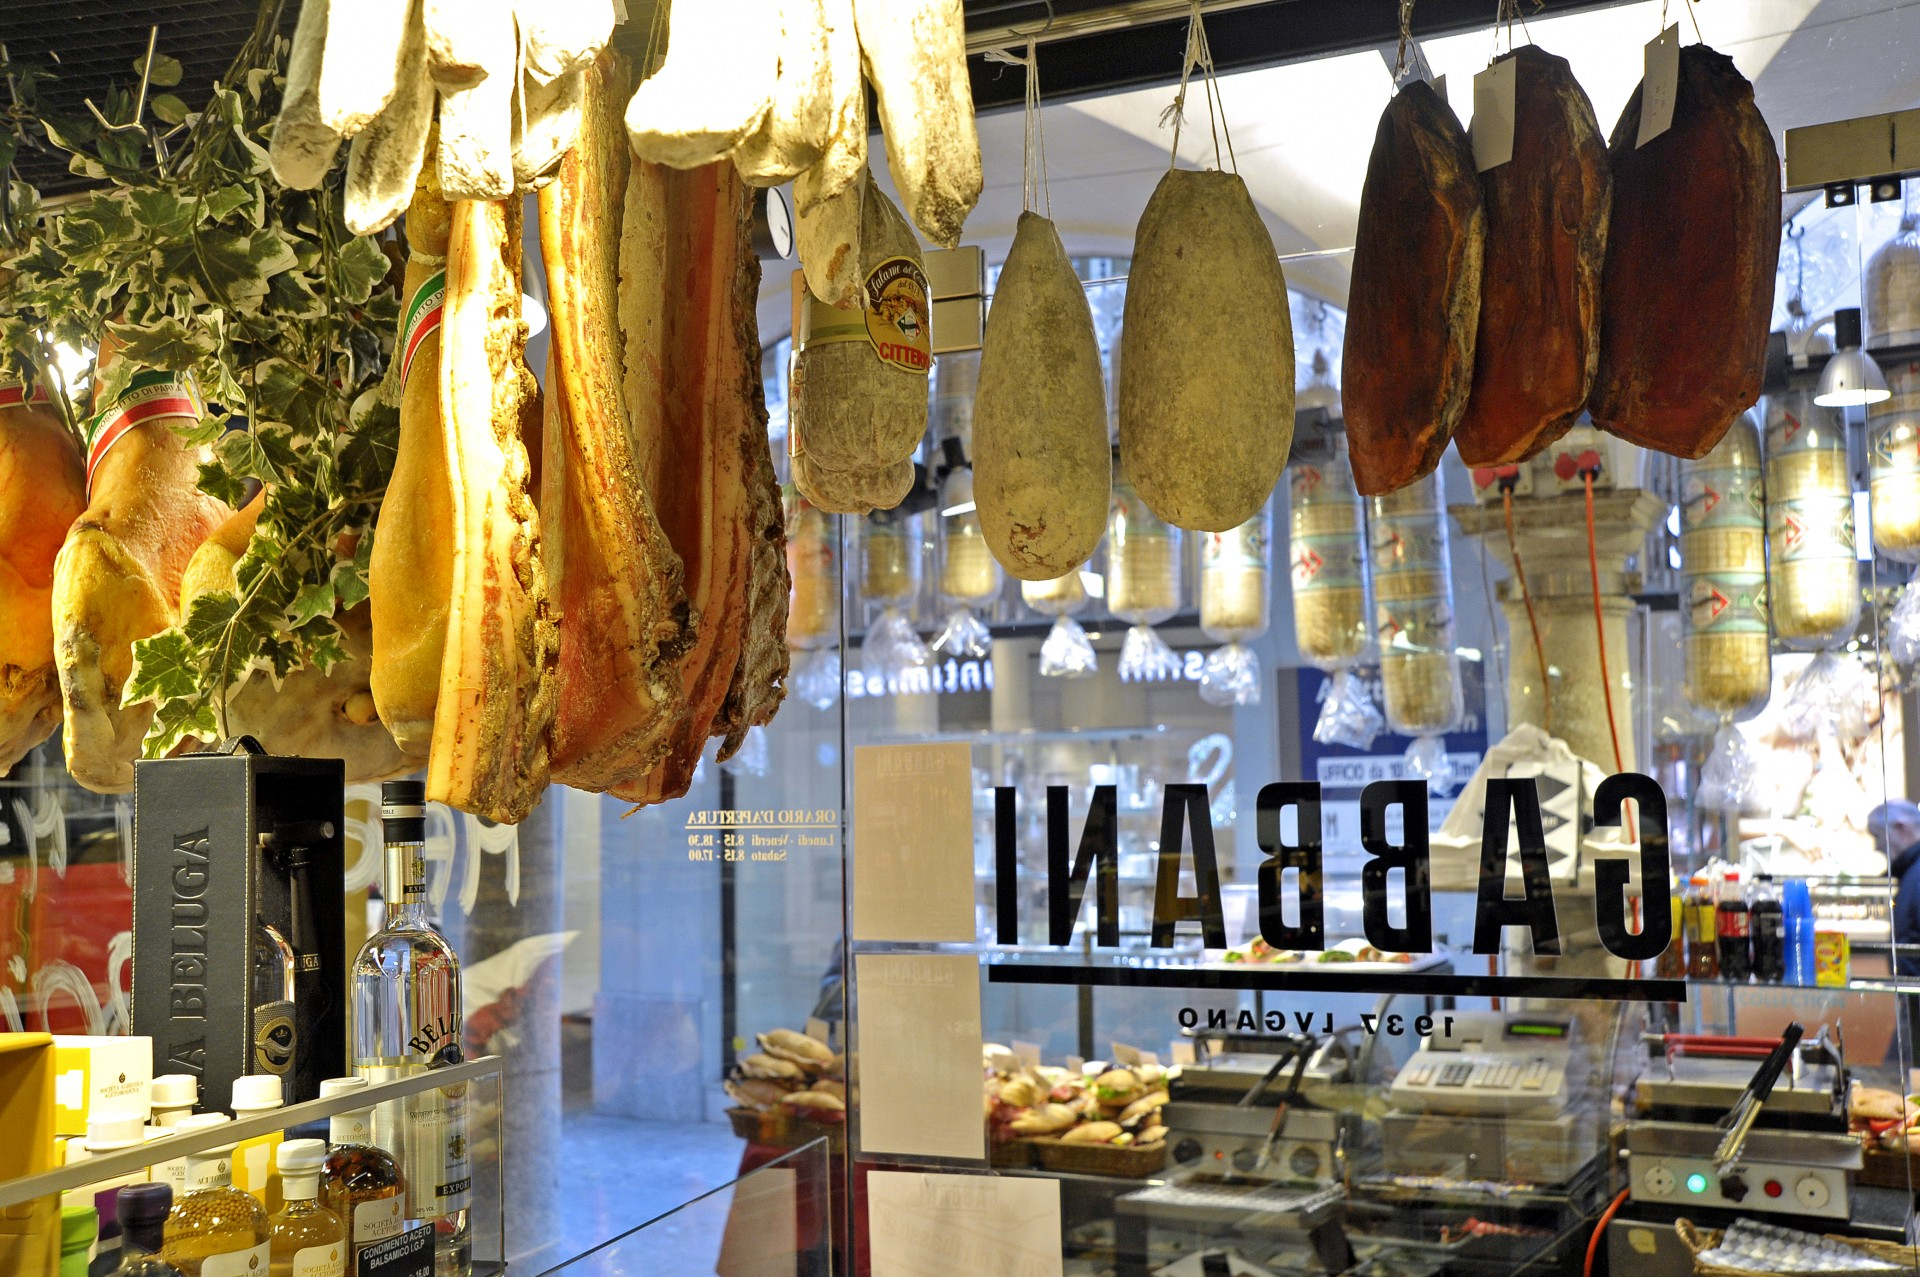 Gourmet and fine food: Italian and Swiss specialties